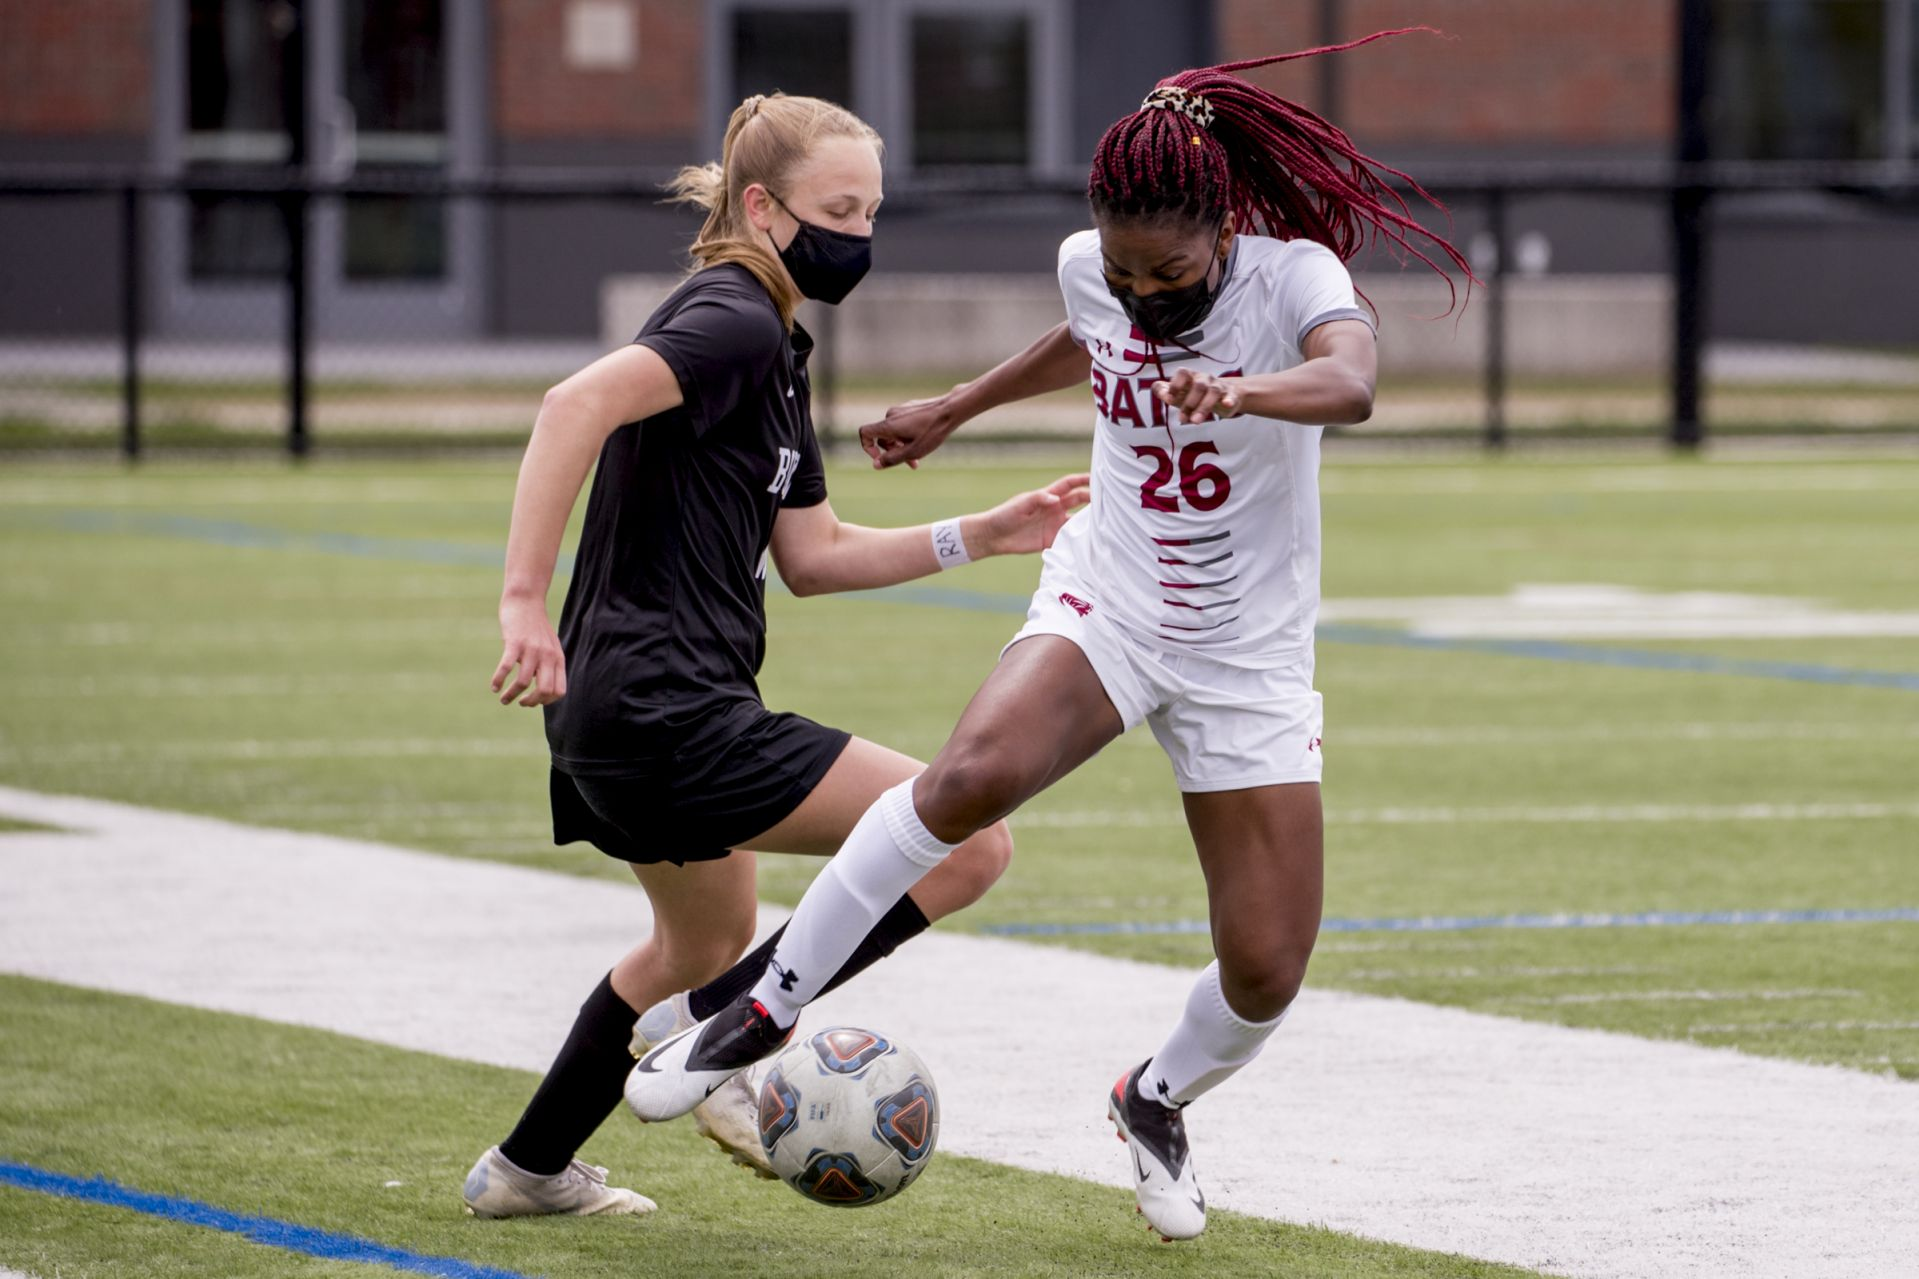 Bowdoin defeated Bates 1-0 in a scrimmage on Garcelon Field onSaturday,May 8, 2021.